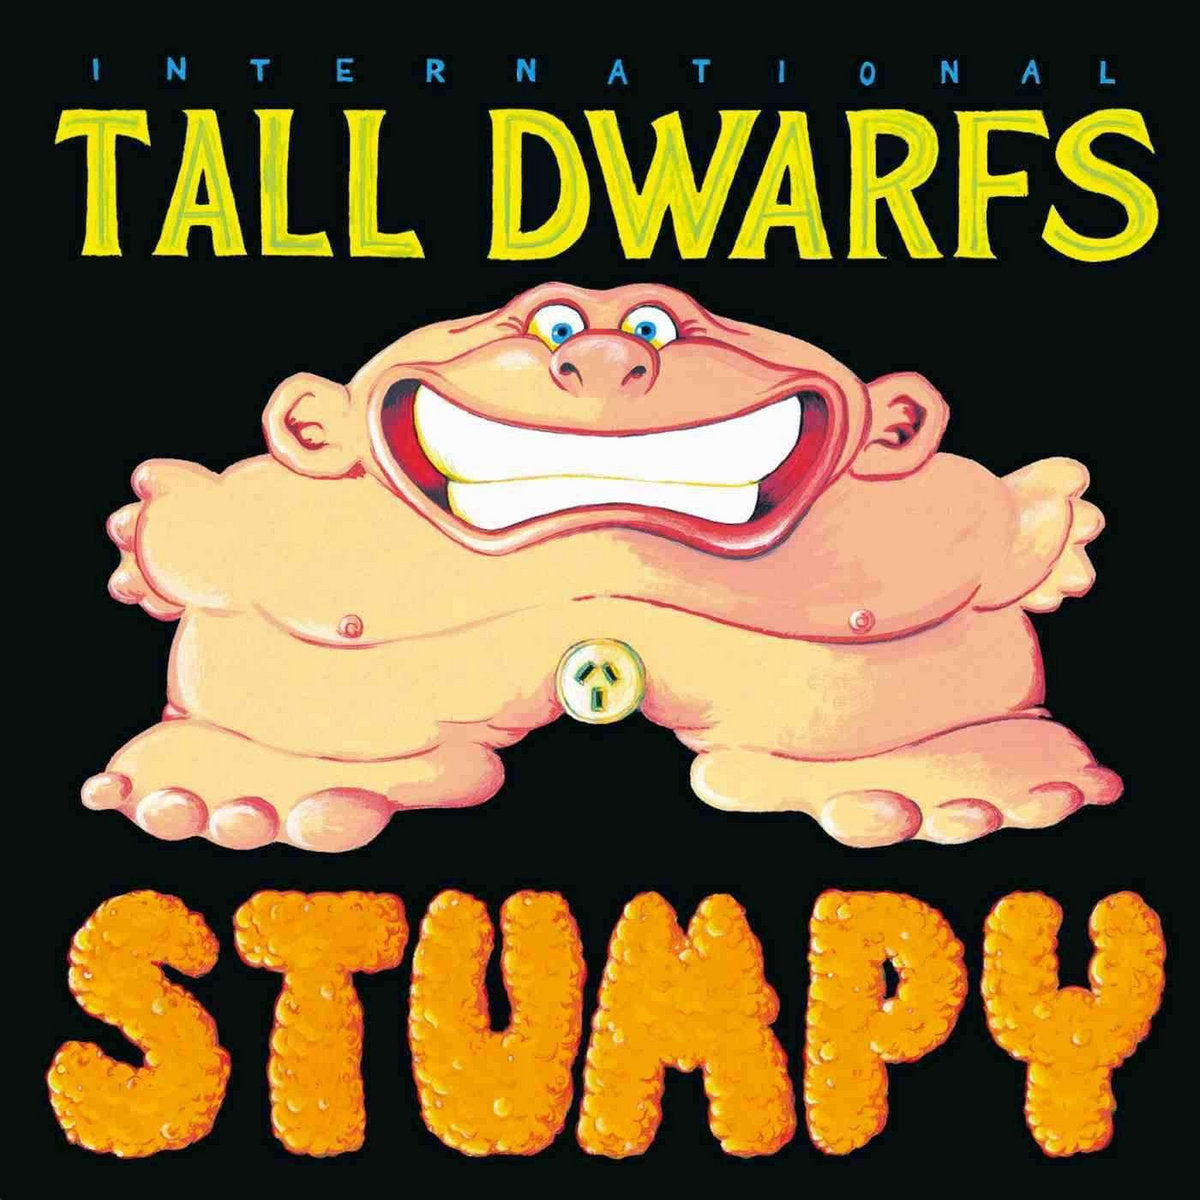 FN384 International Tall Dwarfs - Stumpy (1996)